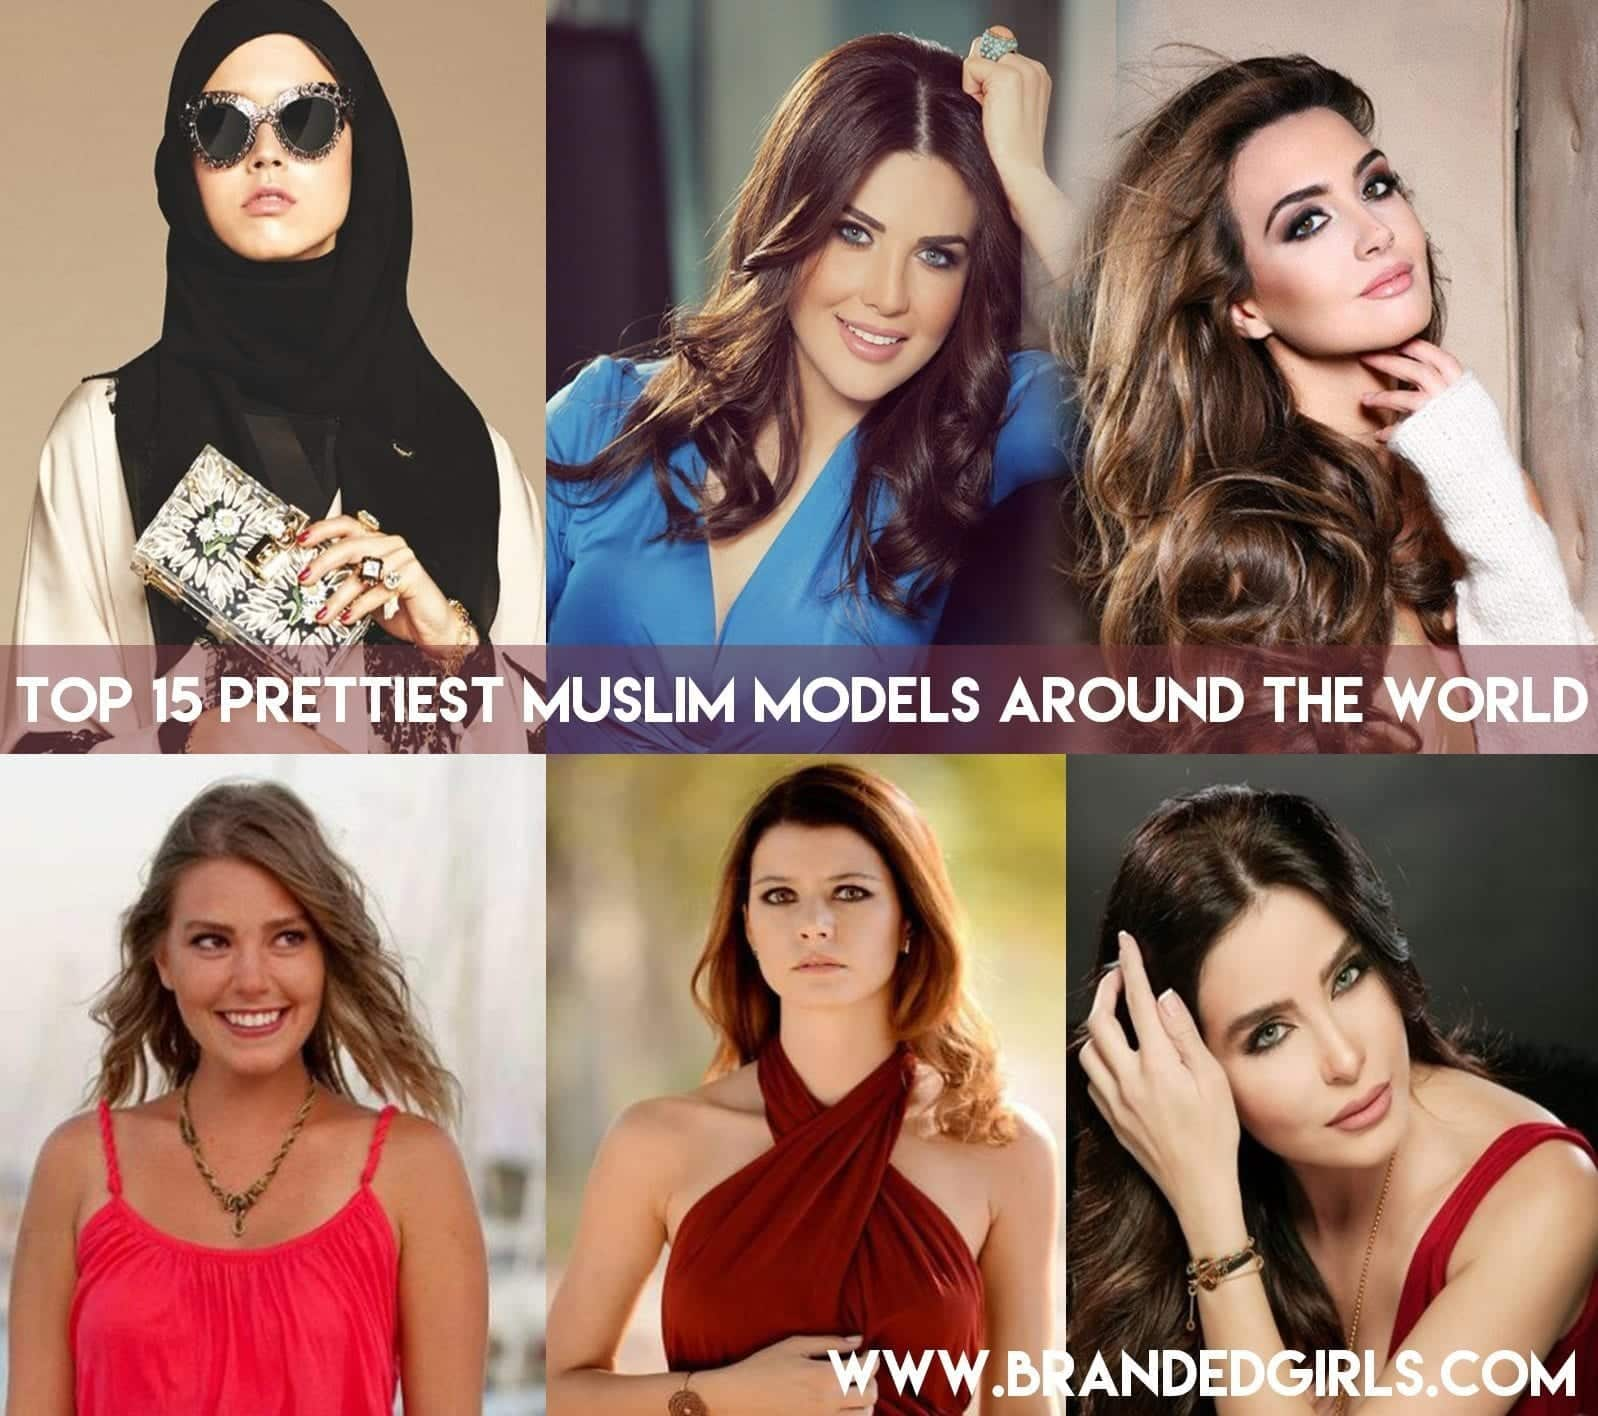 Top-15-Prettiest-Muslim-Models-Around-the-World Top Muslim Models-15 Prettiest Muslim Female Models in World